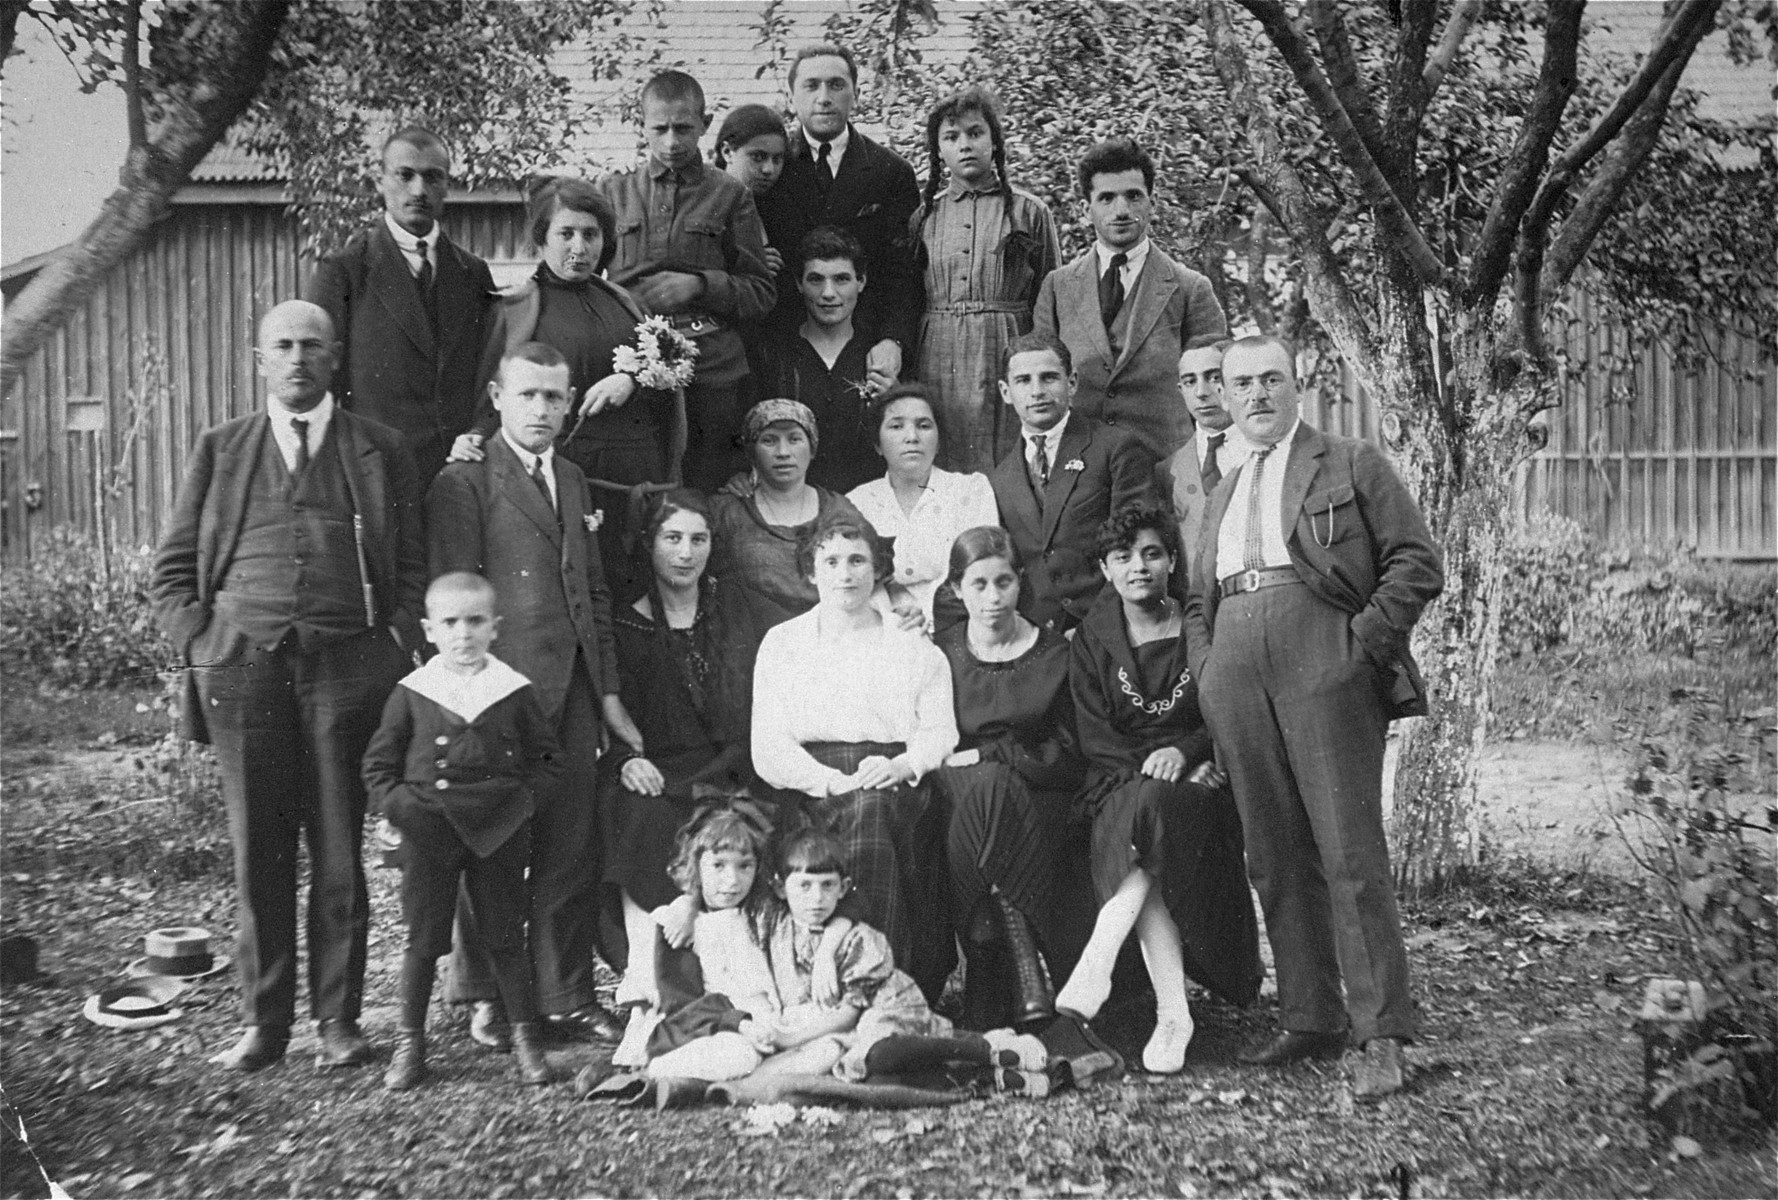 Group portrait of the Gar family in Kron, Lithuania.